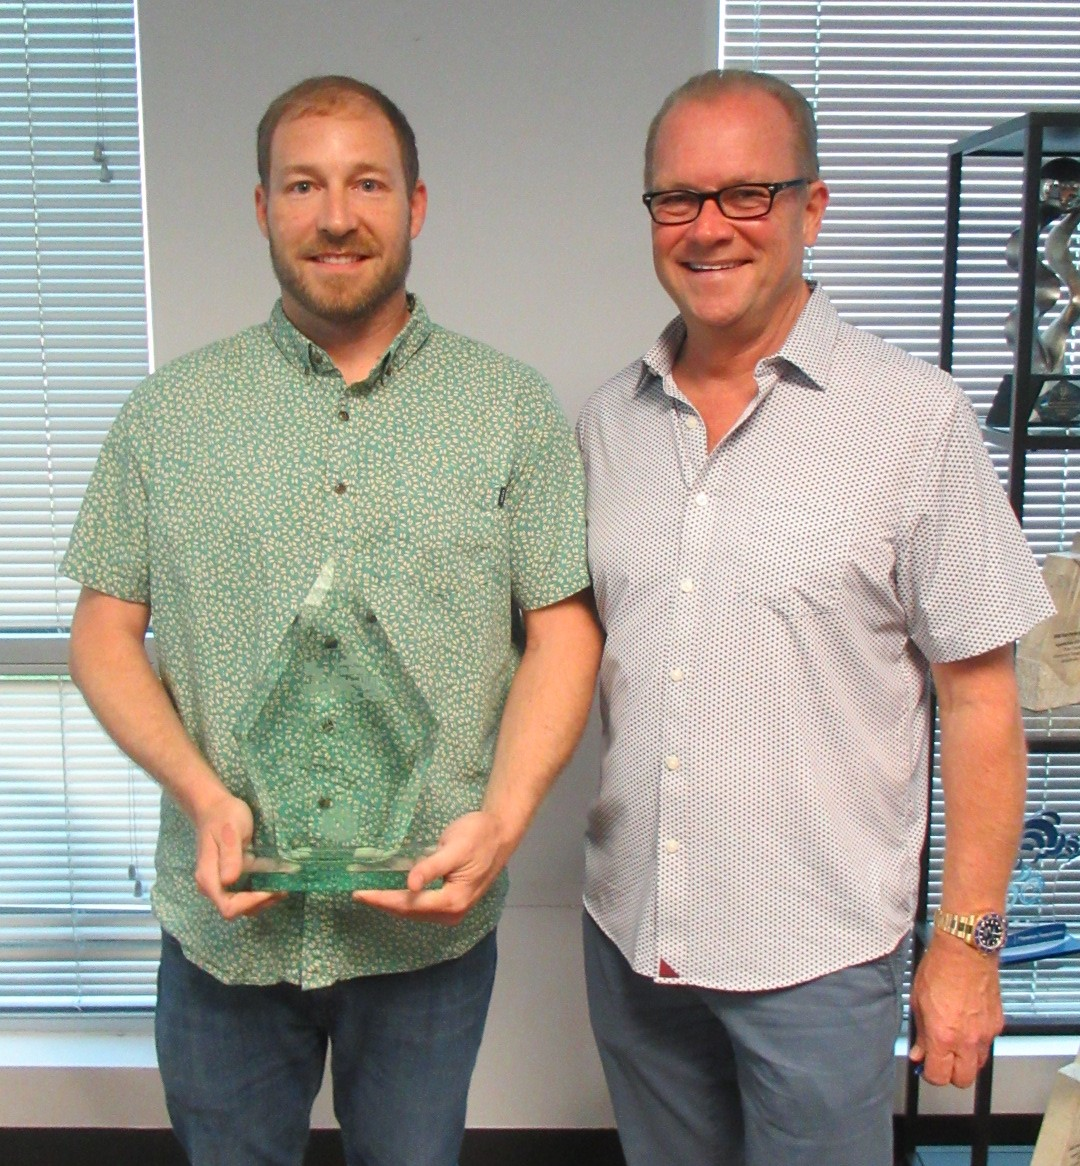 Congratulations to Charles Moran, our Q2 2021 Employee of the Quarter!